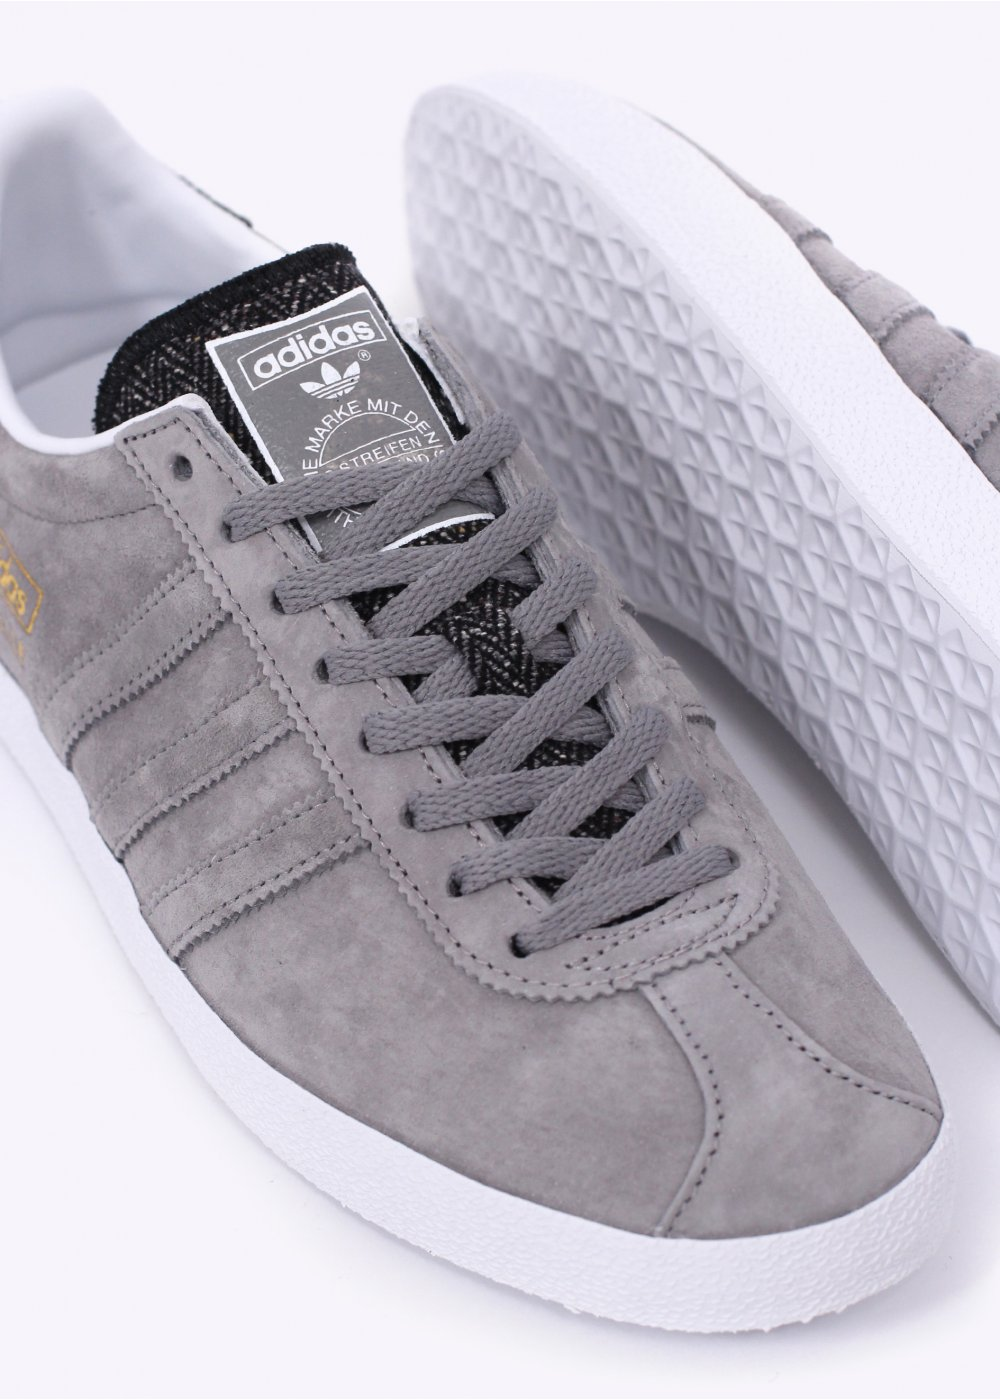 Buy adidas gazelle og grey   OFF63% Discounted a2ea587a8